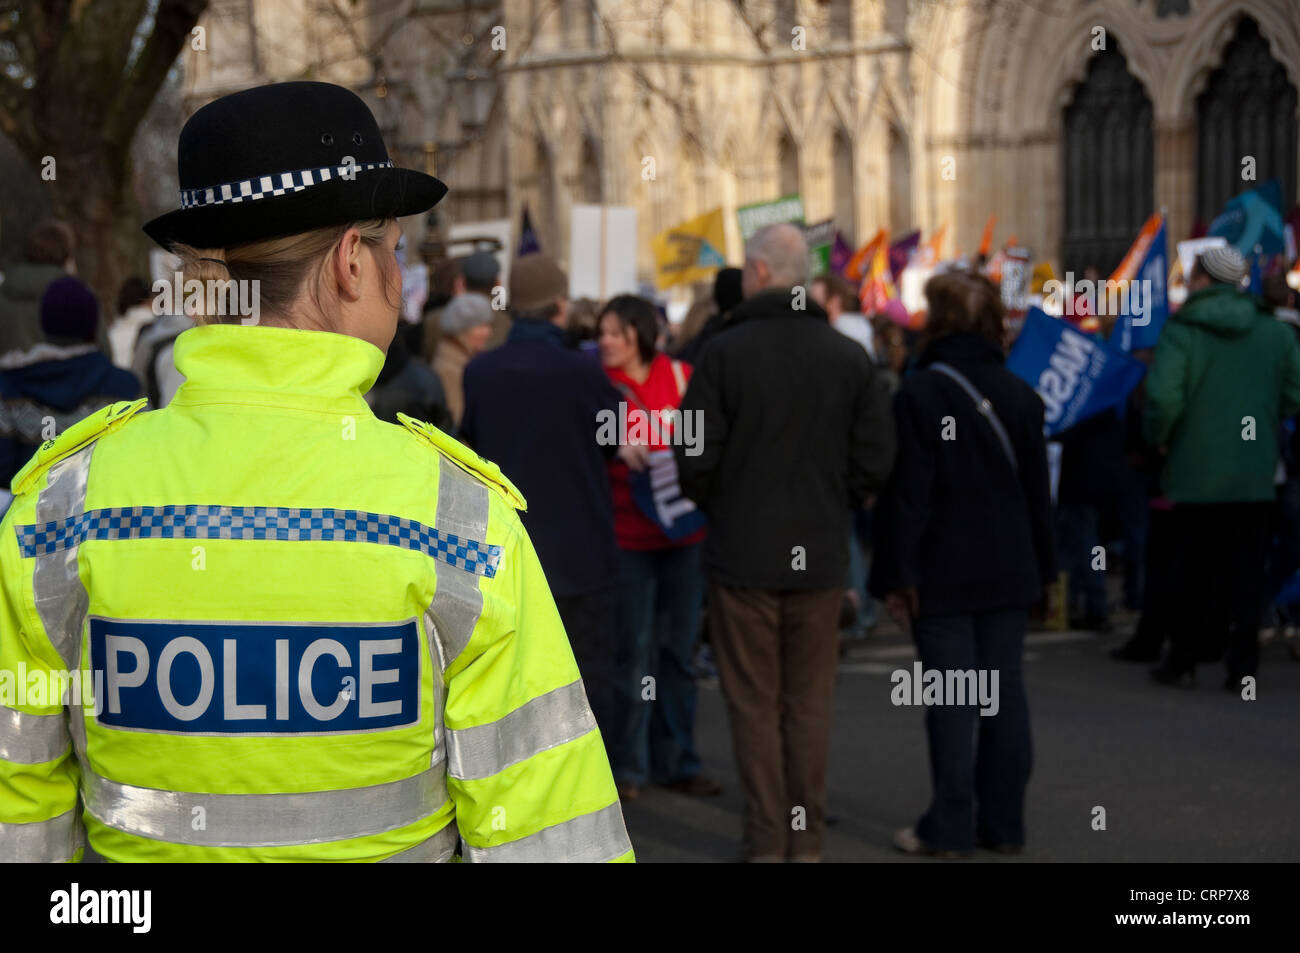 Police woman on duty at a protest by UNISON trade union members outside York Minster. - Stock Image